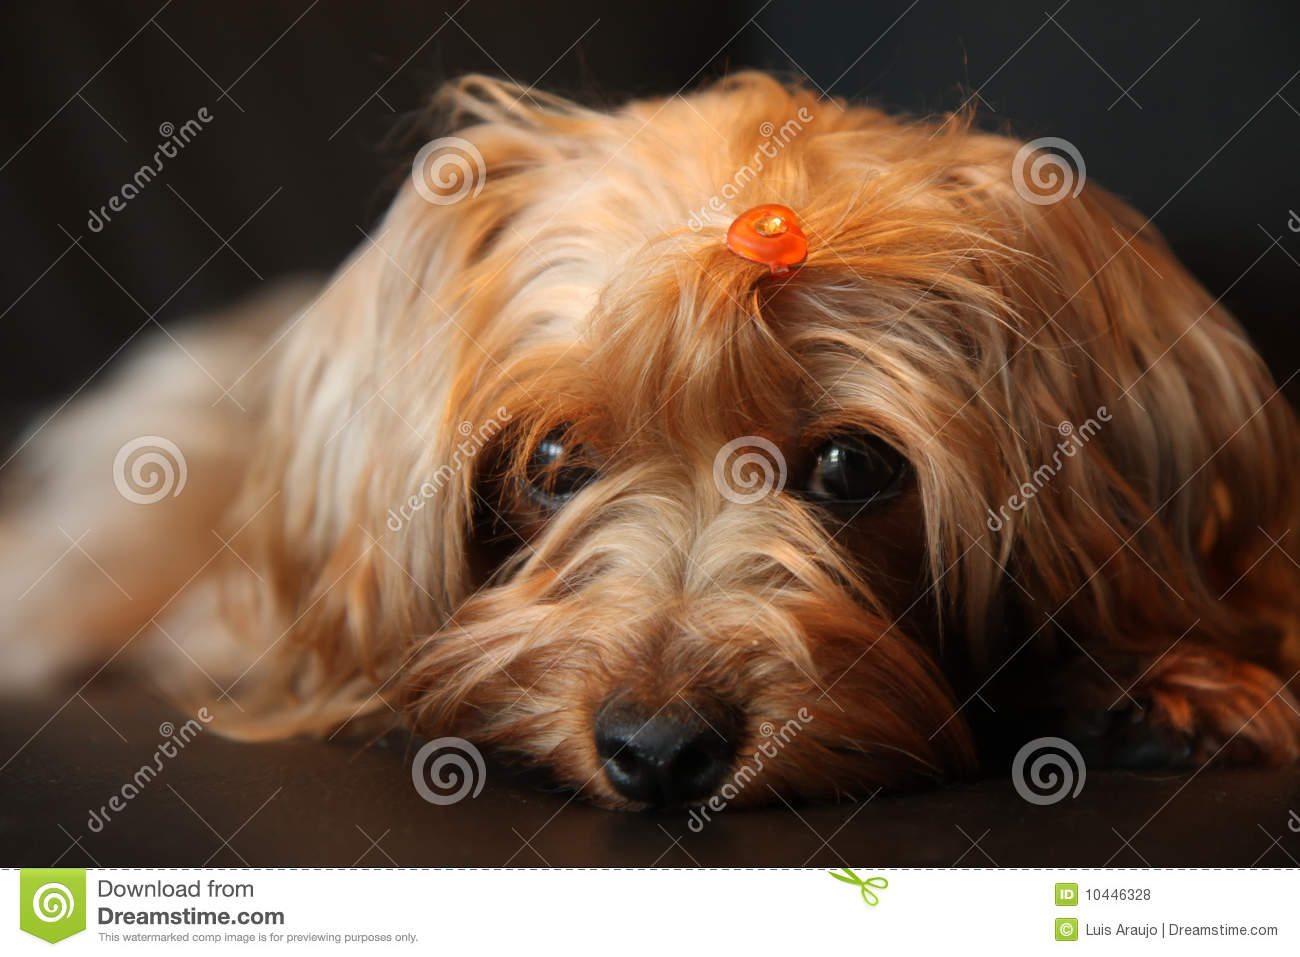 Yorkie Poo Cuteness Royalty Free Stock Photos   Image  10446328